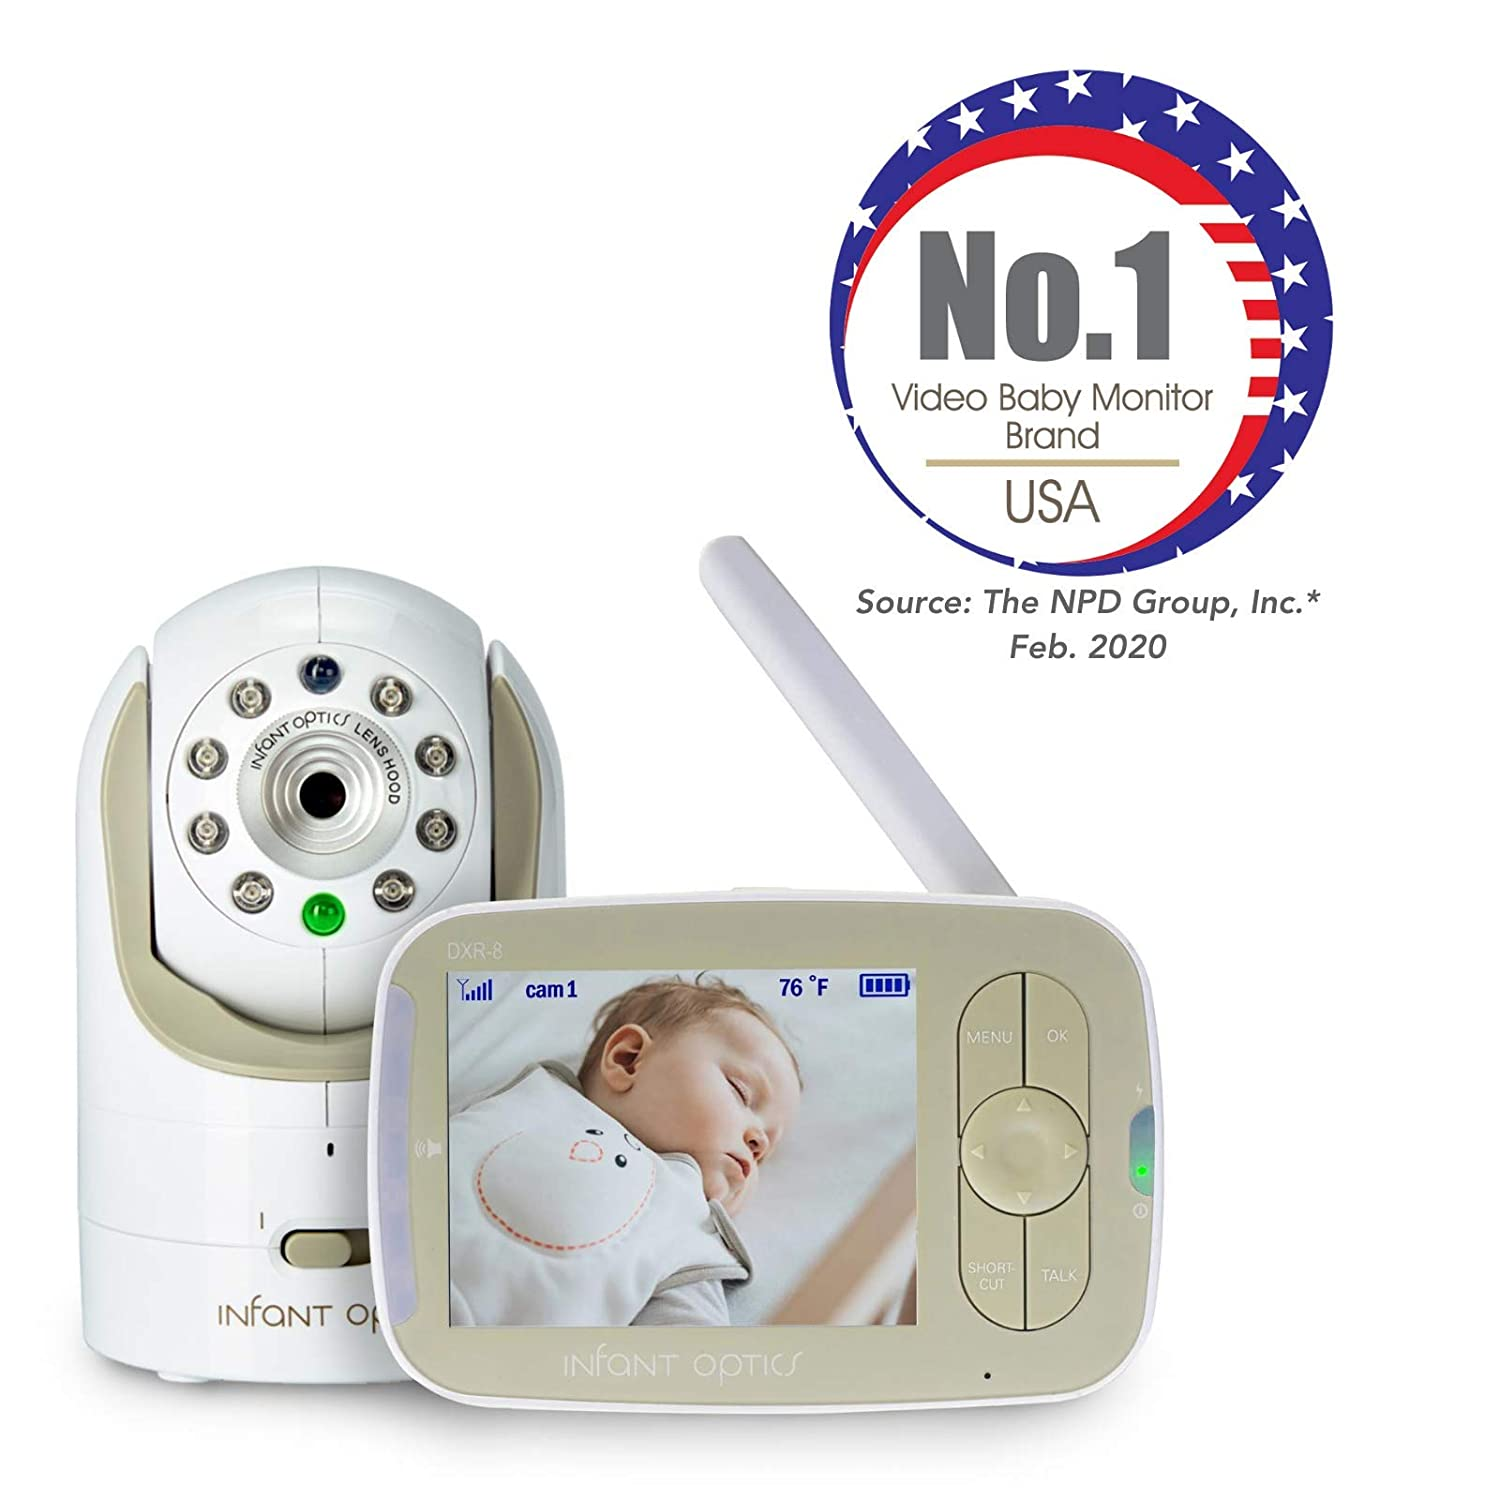 Infant Optics DXR 8 Video Best Baby Monitor